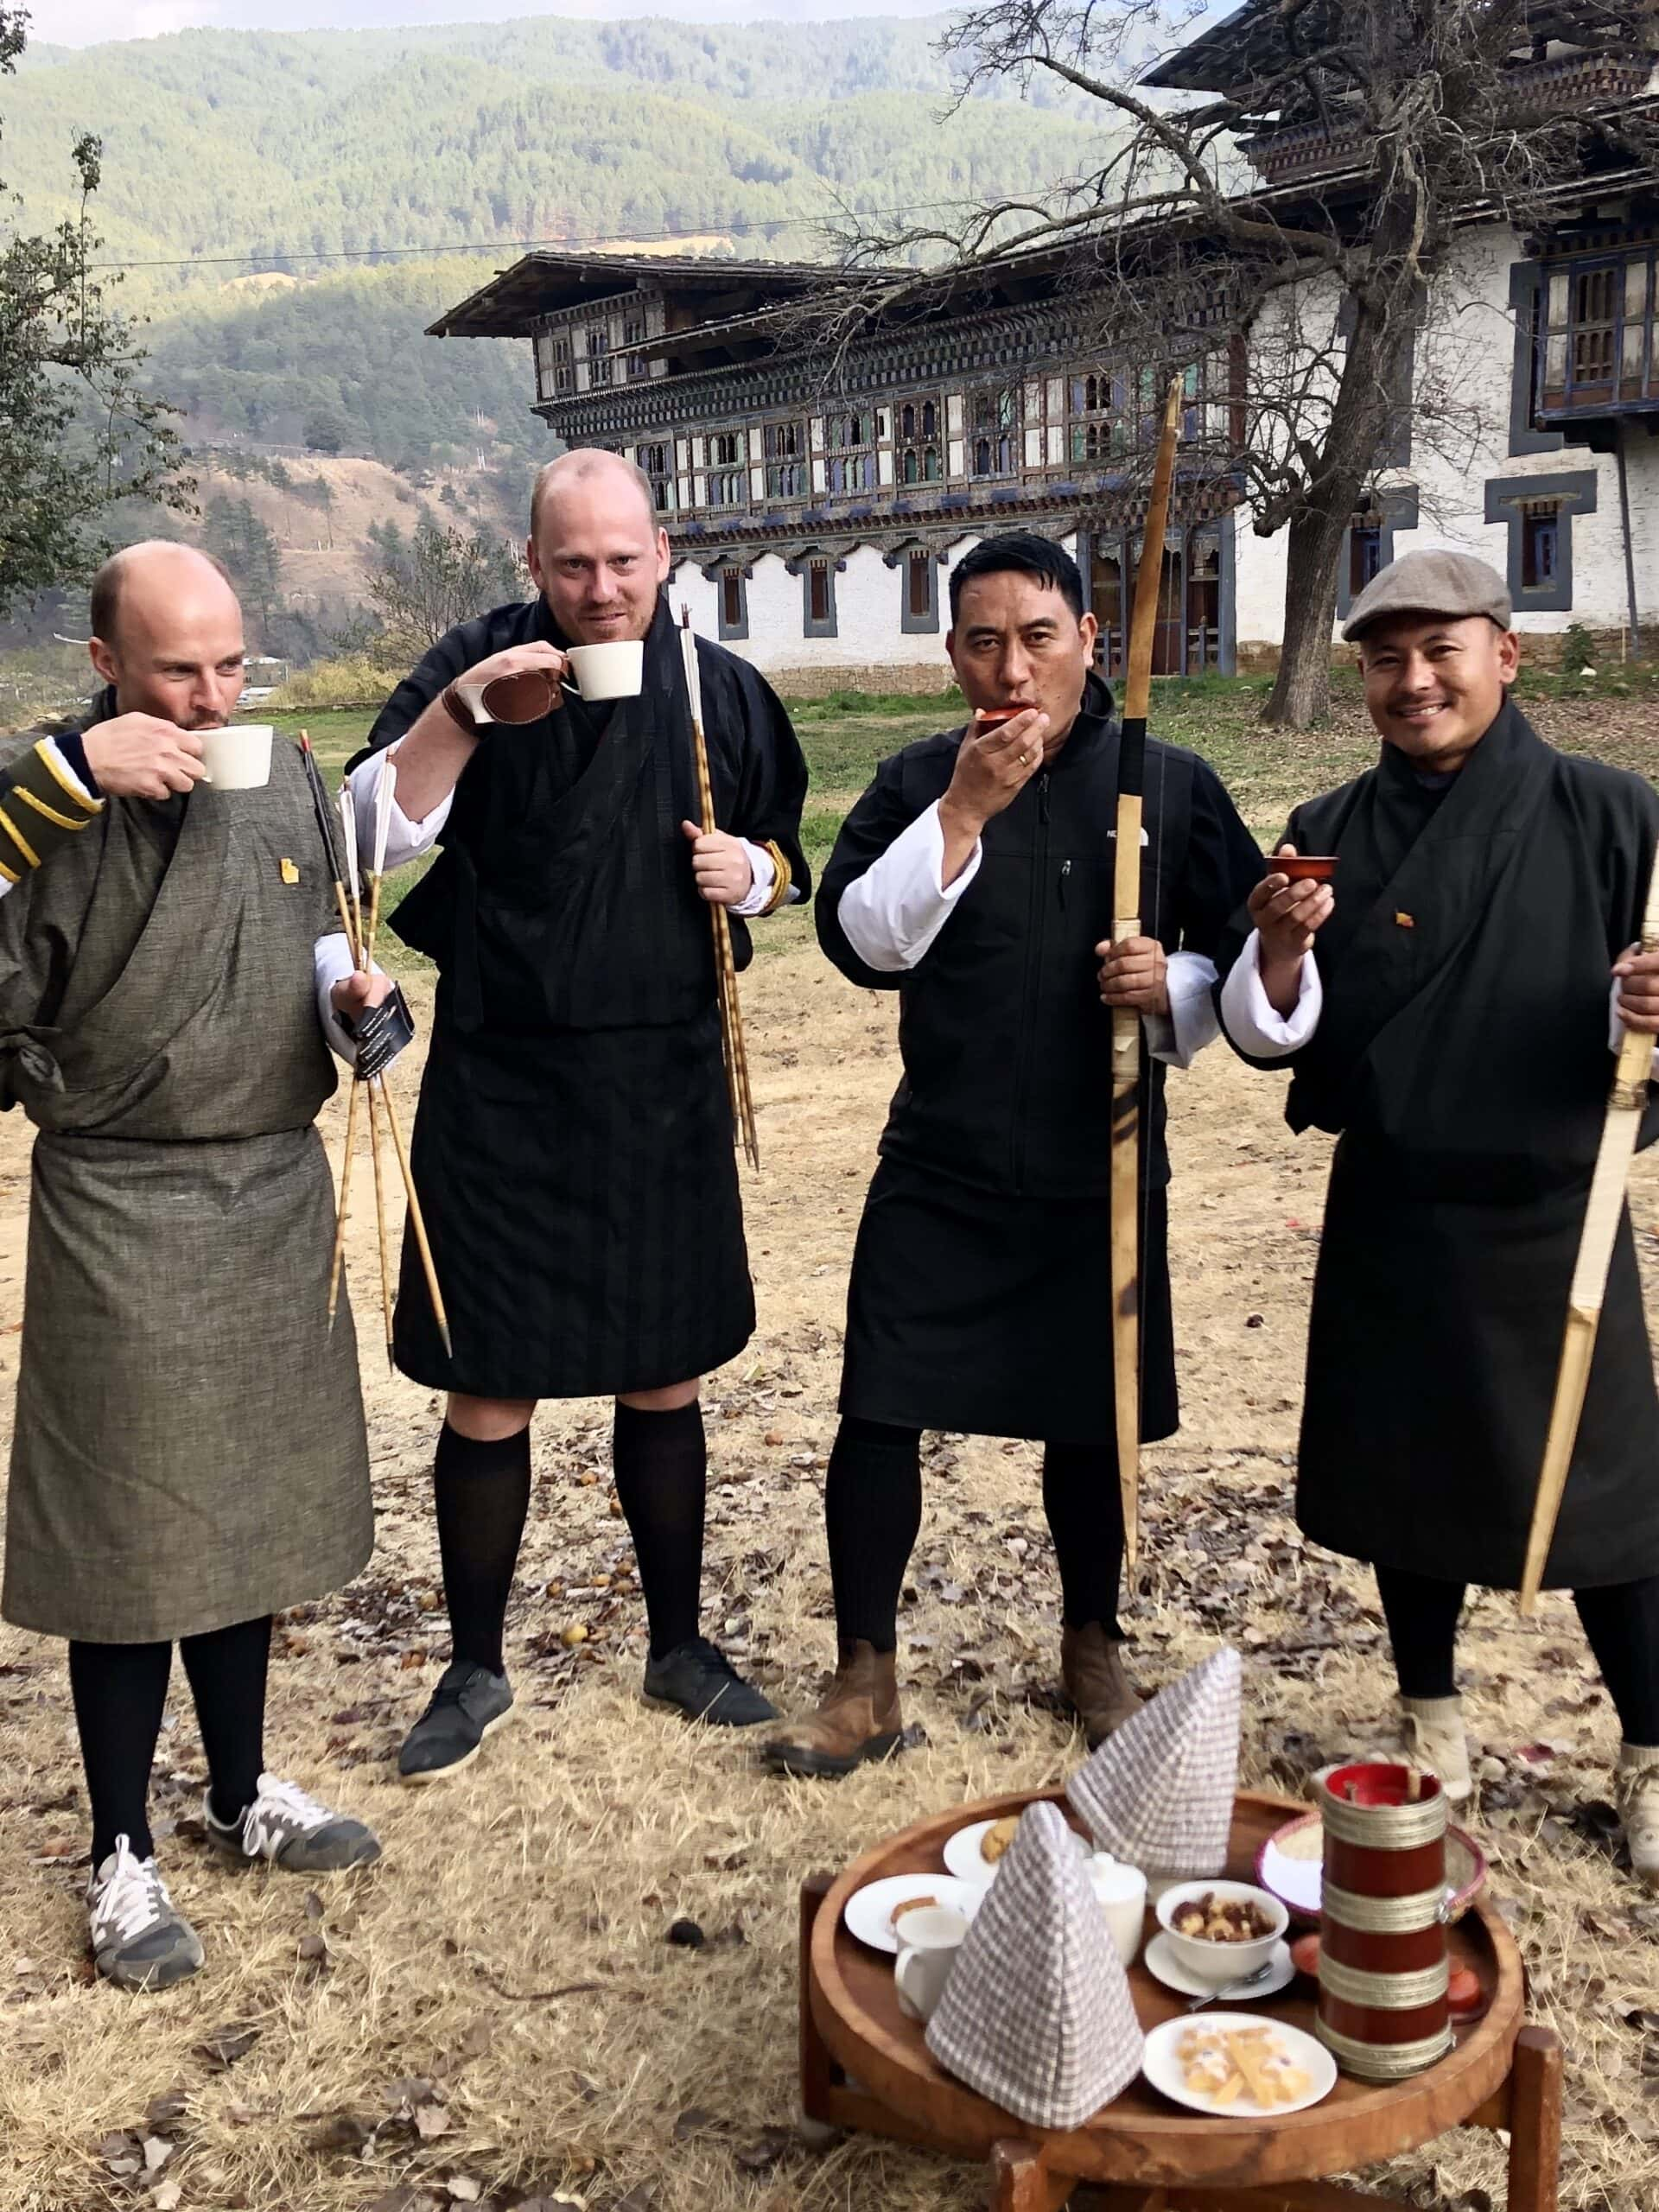 Travellers and guides taking a break from archery at Aman Bumthang in Bhutan